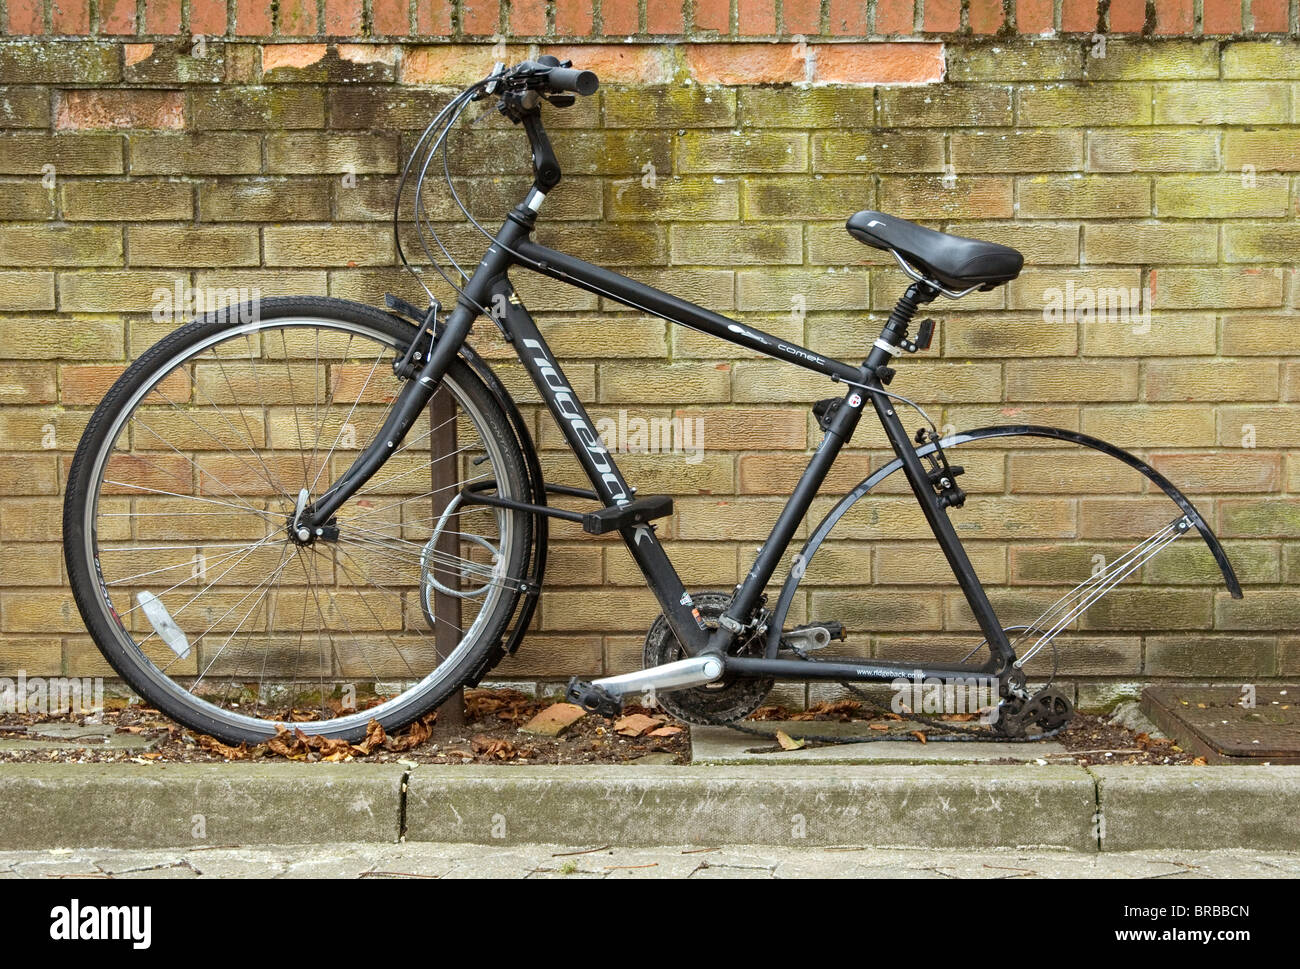 A New Ridgeback Comet Bicycle With Its Rear Wheel Missing